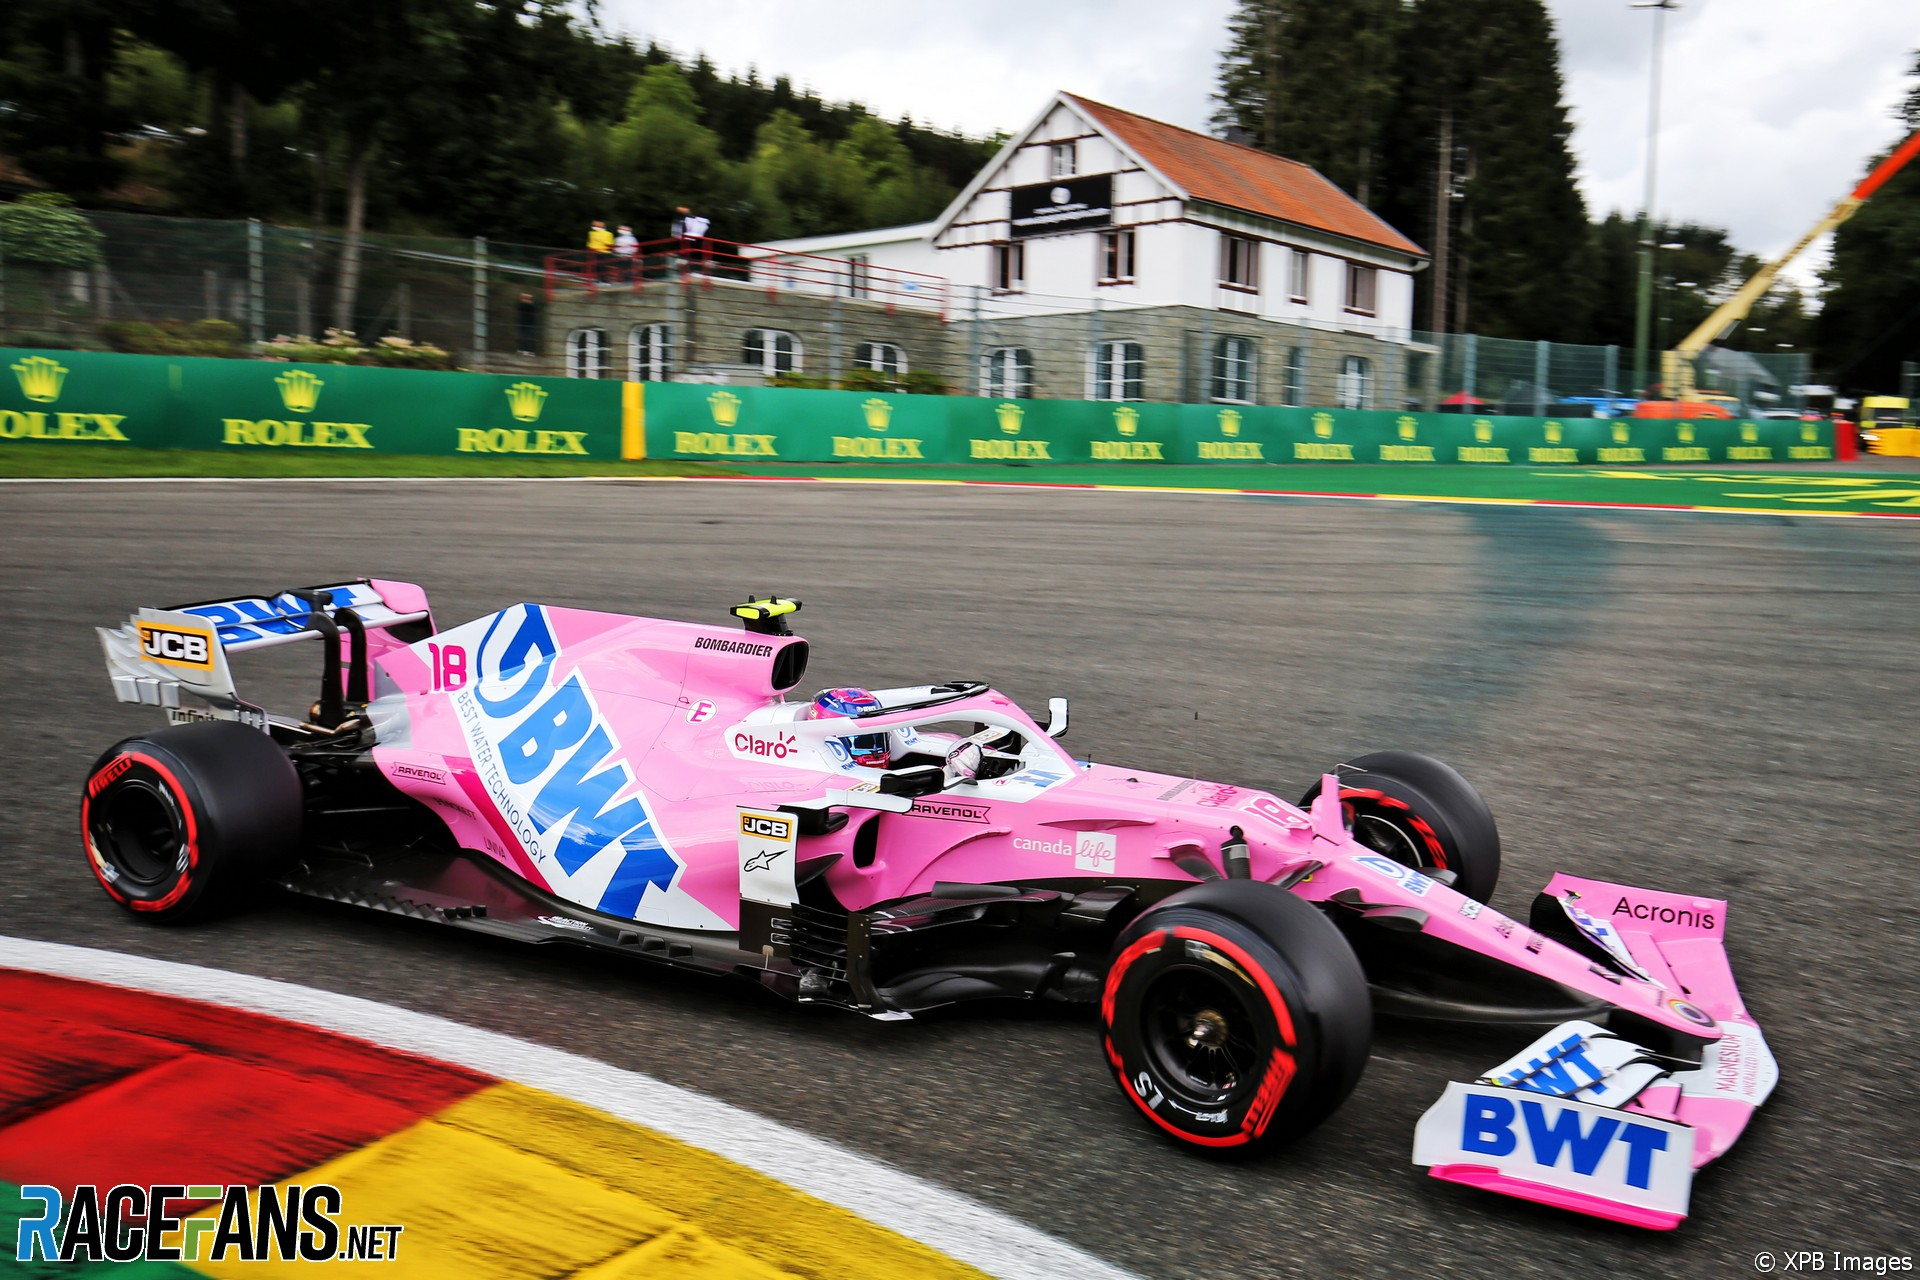 Lance Stroll, Racing Point, Spa-Francorchamps, 2020